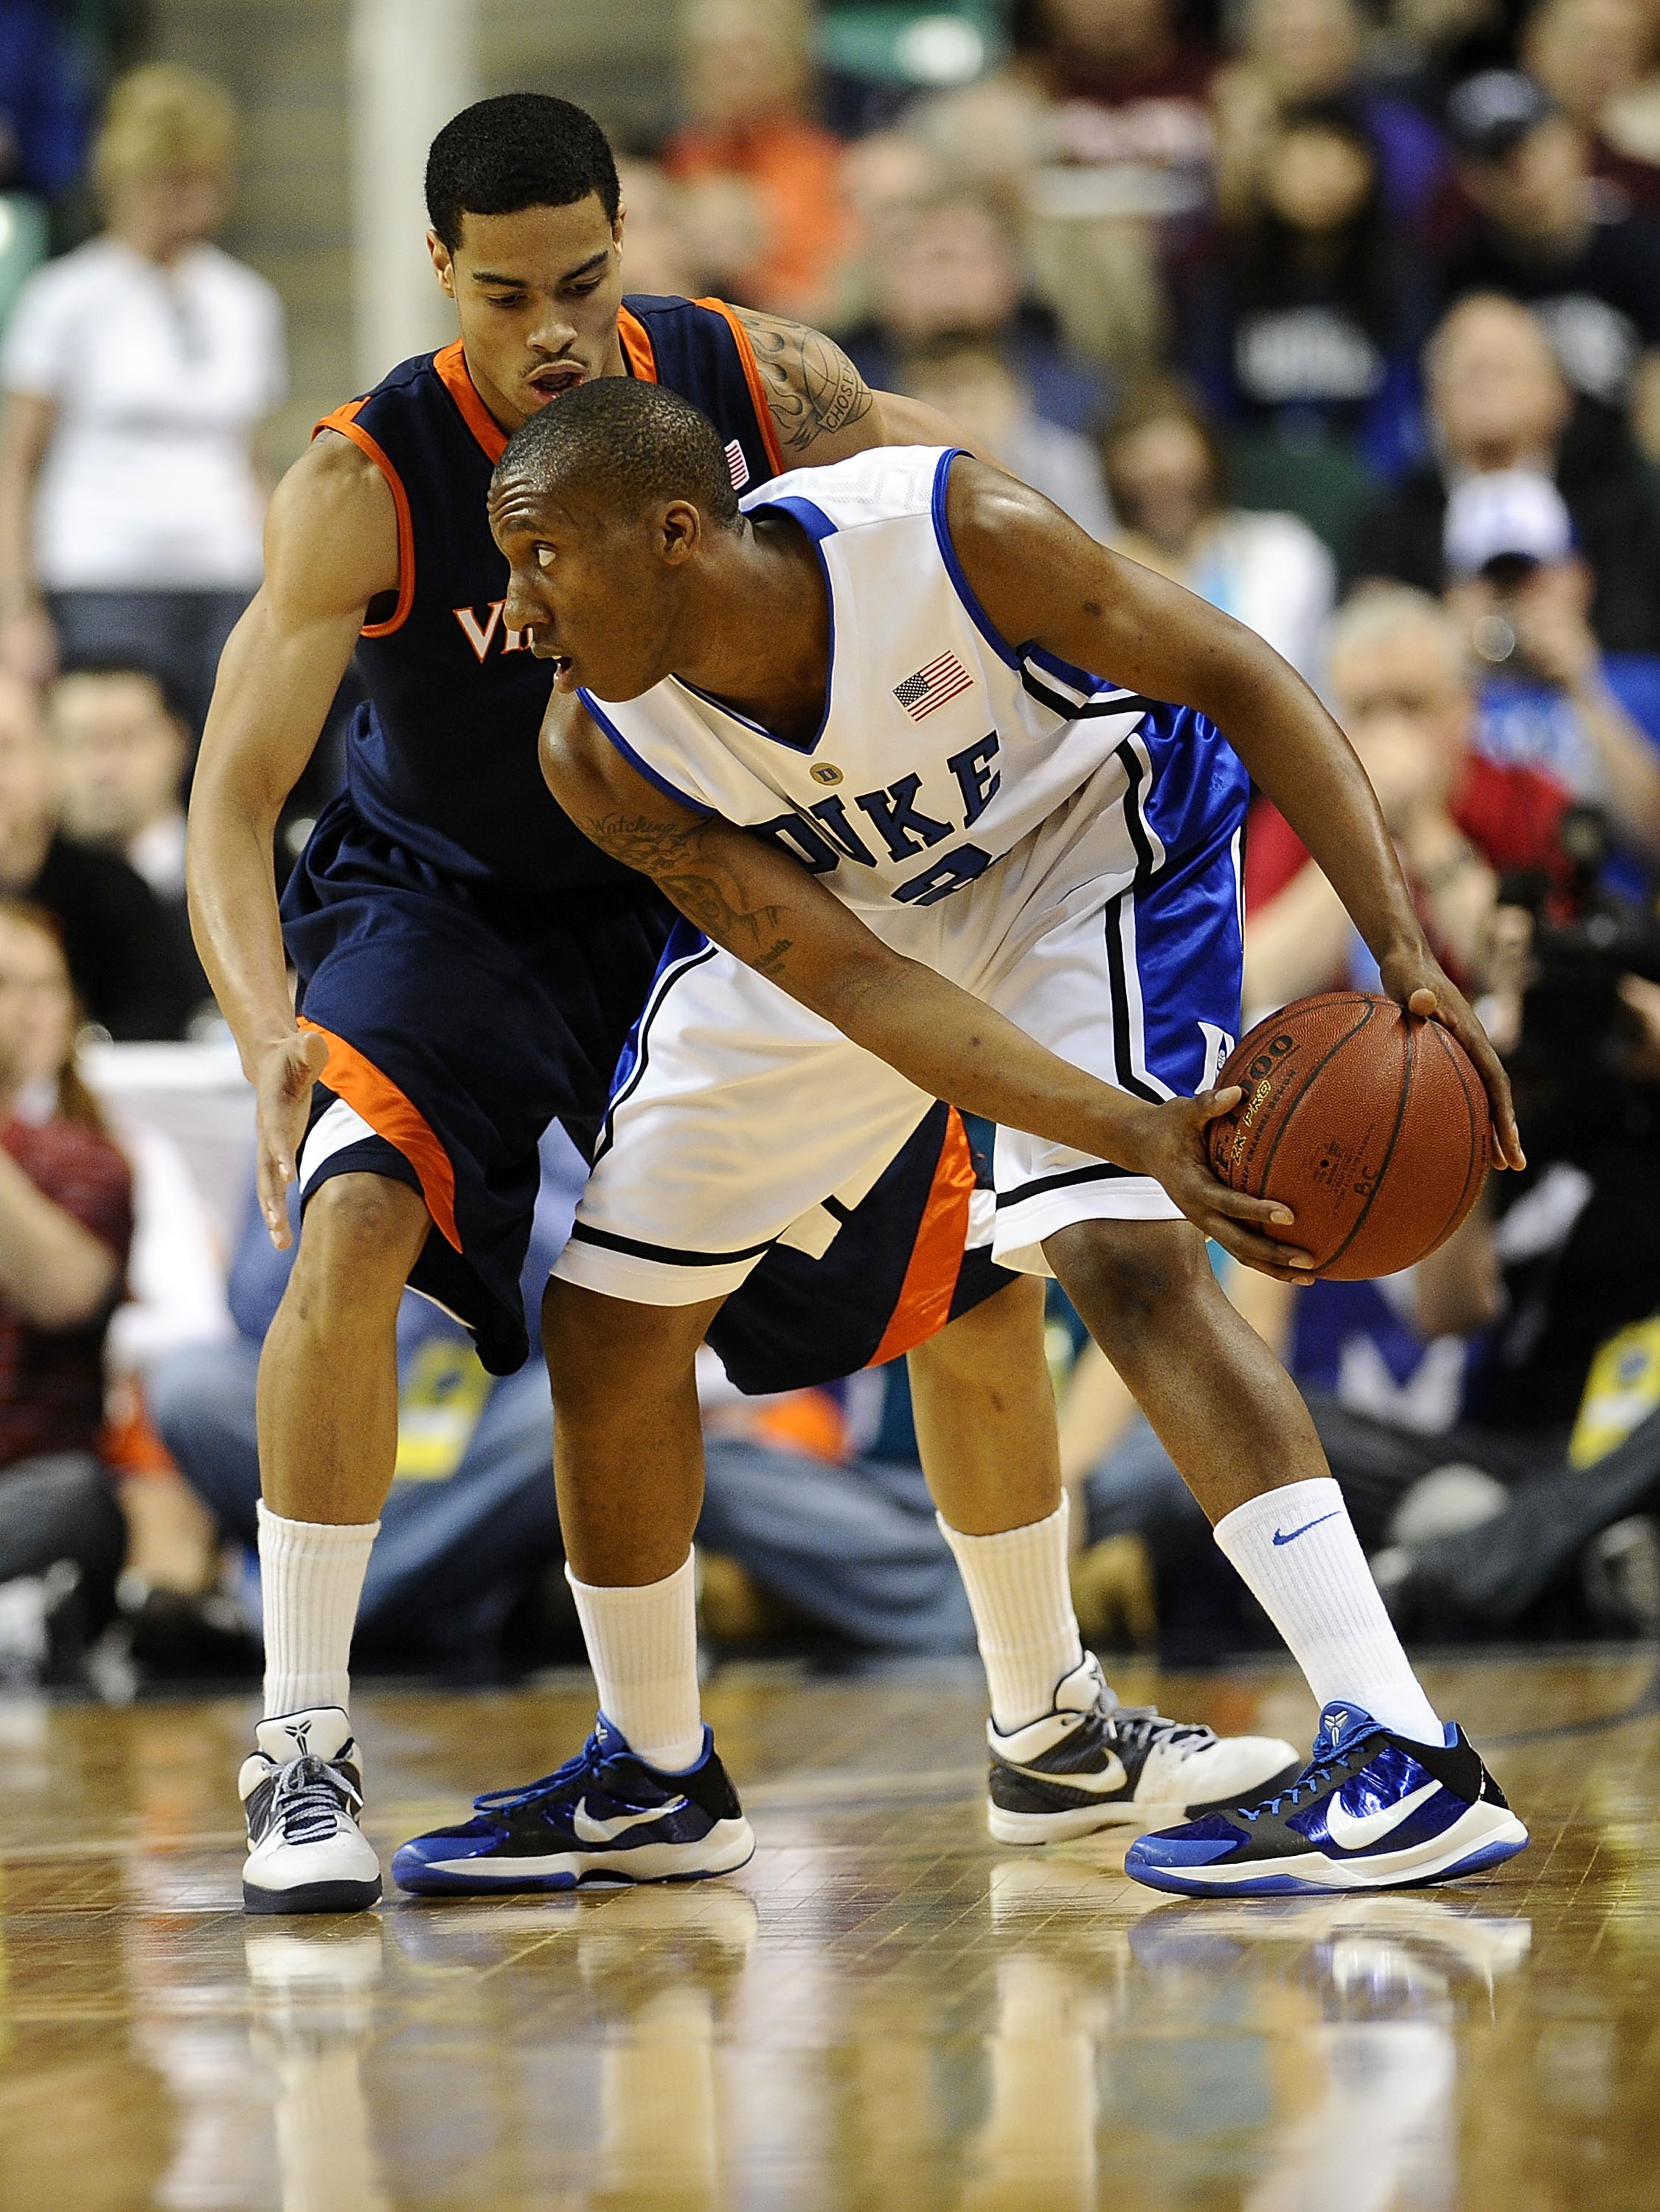 GREENSBORO, NC - MARCH 12:  Nolan Smith #2 of the Duke Blue Devils looks to get by Mike Scott #32 of the University of Virginia Cavaliers in their quarterfinal game in the 2010 ACC Men's Basketball Tournament at the Greensboro Coliseum on March 12, 2010 i